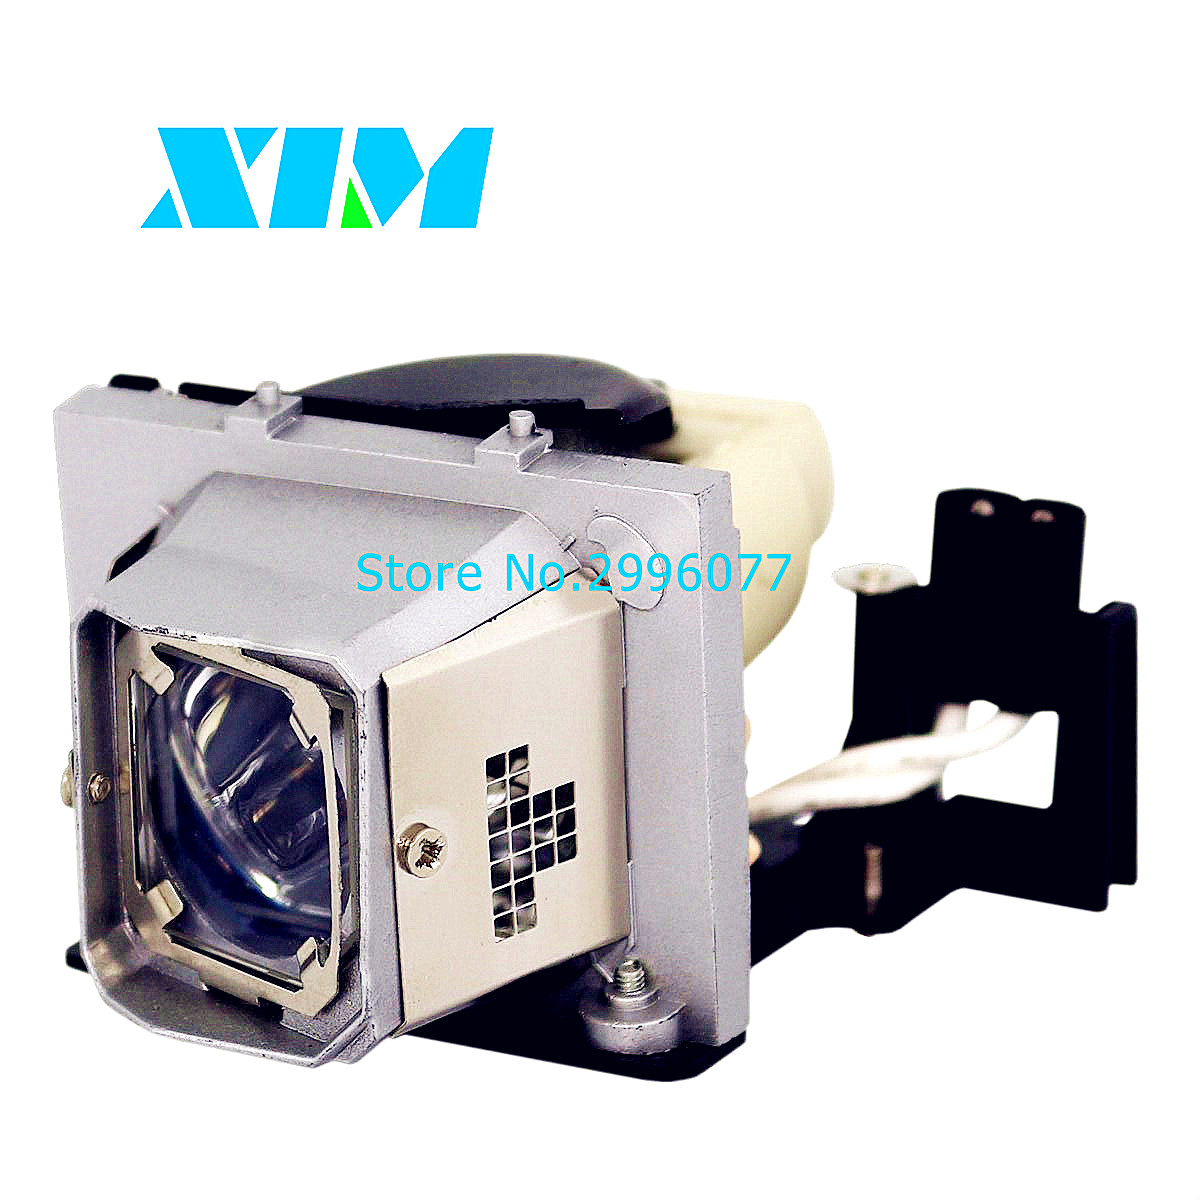 High Quality 311-8529 Replacement Projector Lamp For DELL M209X M210X M410HD M409MX M409X M410X Projectors With Housing